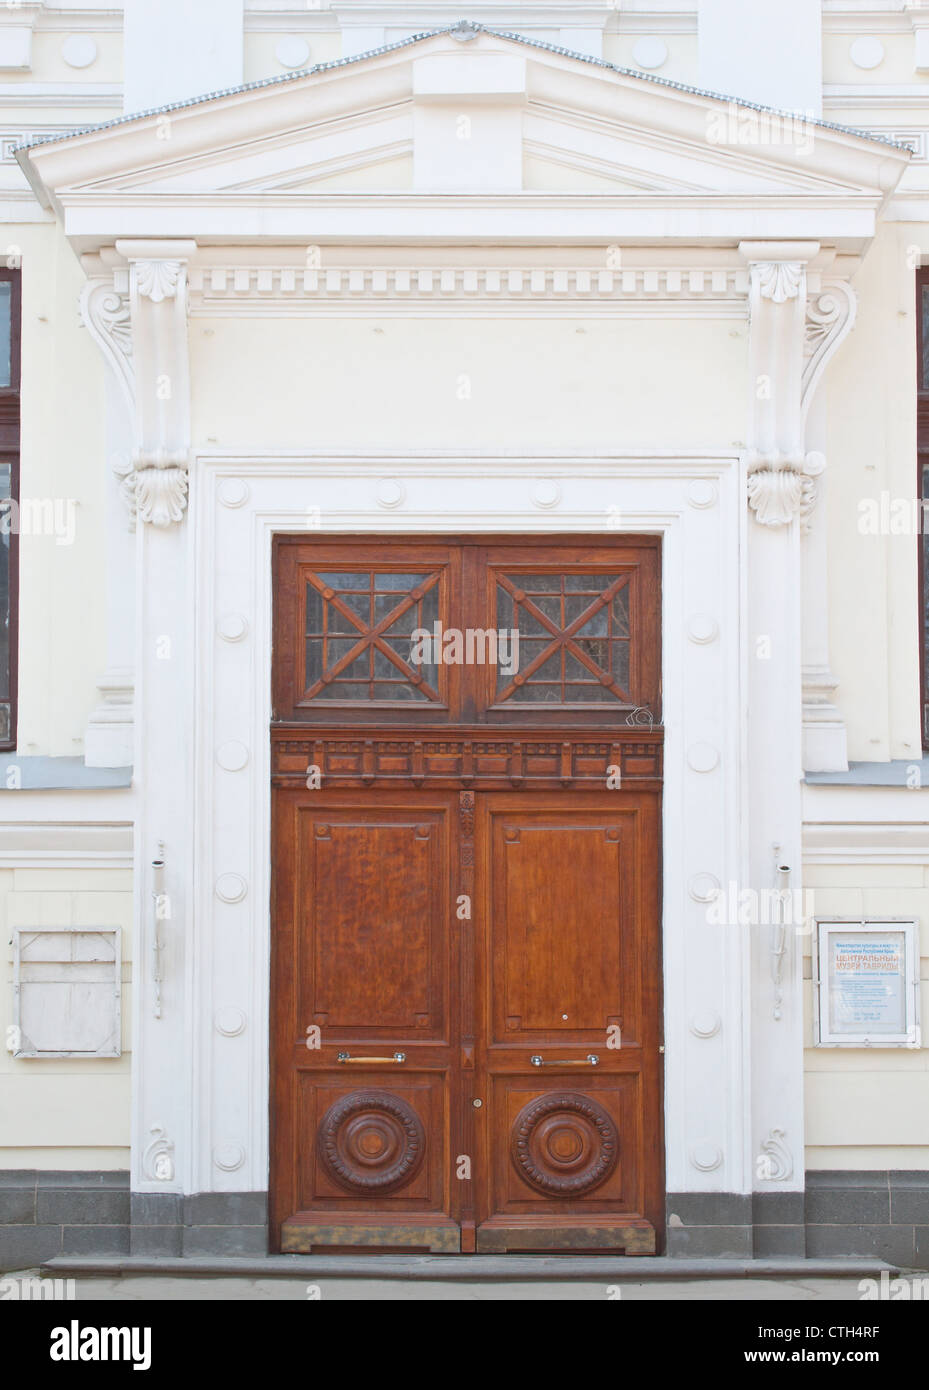 Retro wooden museum doors in the afternoon & Retro wooden museum doors in the afternoon Stock Photo: 49549459 - Alamy